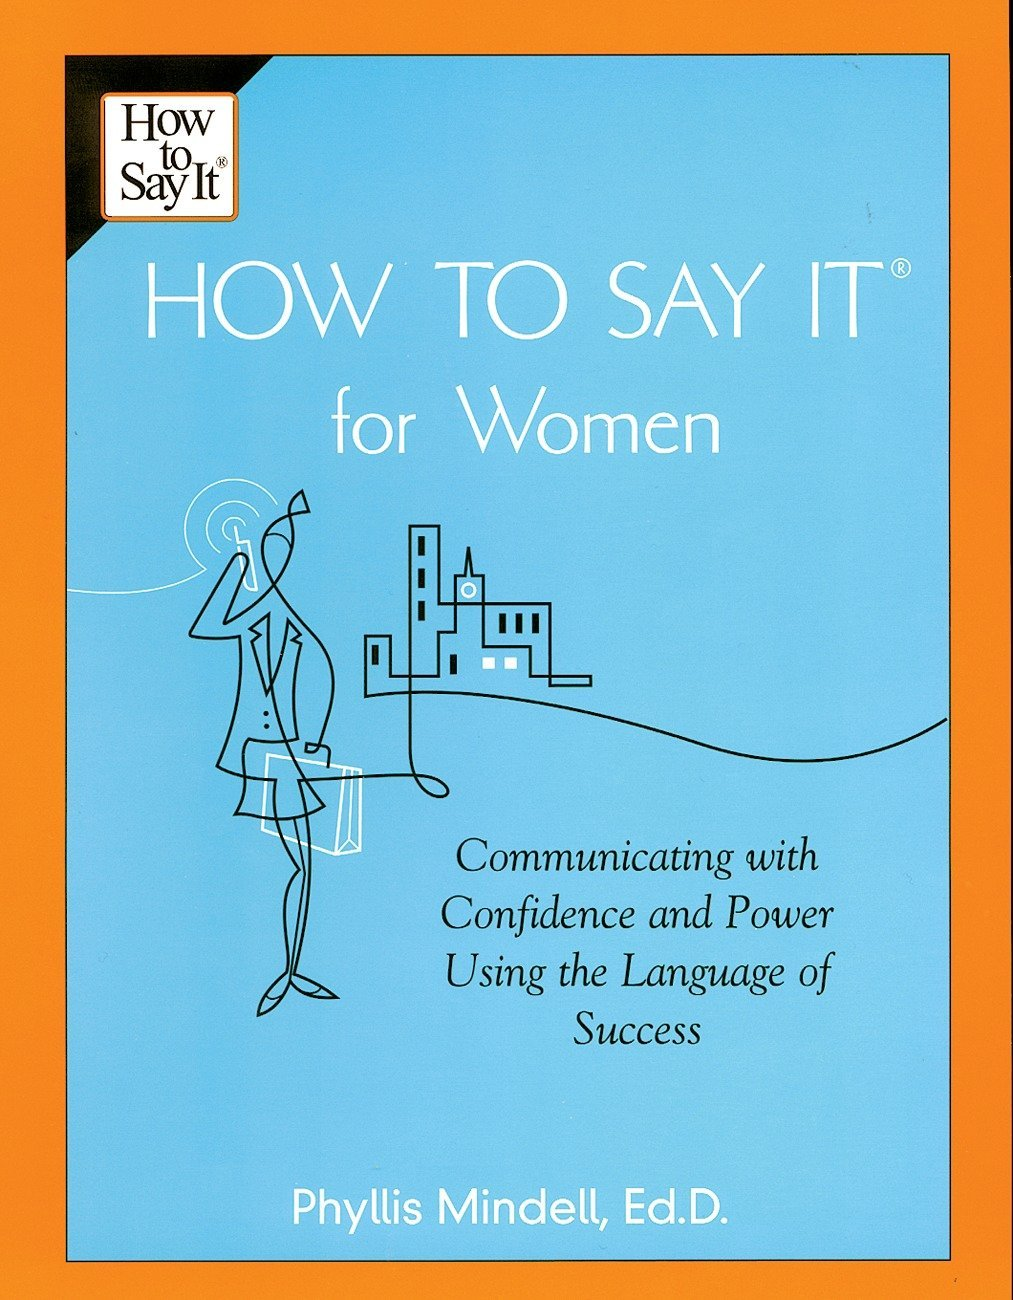 How to Say It For Women: Communicating with Confidence and Power Using the Language of Success by Prentice Hall Press